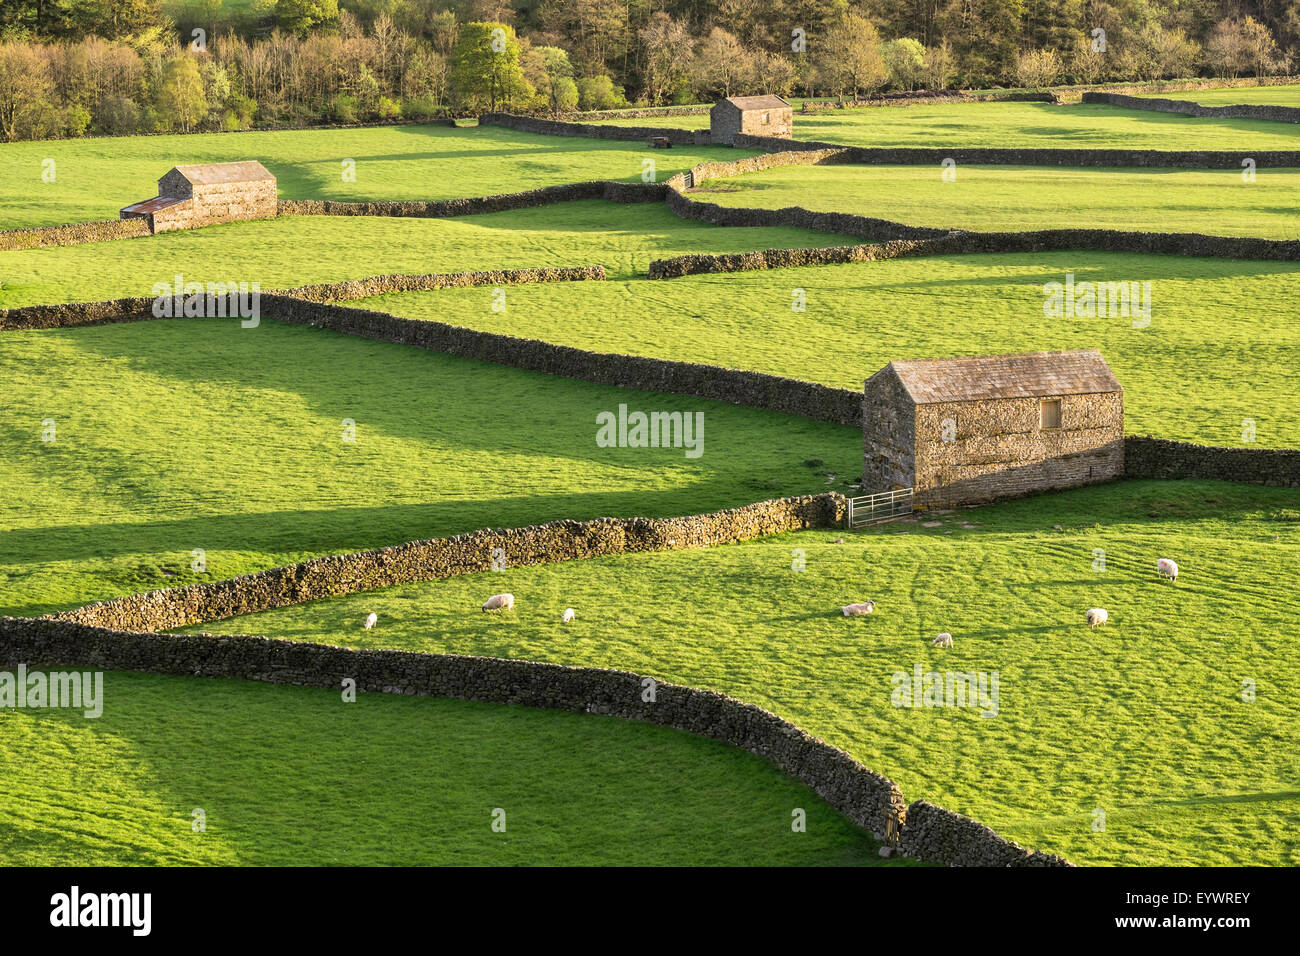 Barns and dry stone walls at Gunnerside, Swaledale, Yorkshire Dales, Yorkshire, England, United Kingdom, Europe - Stock Image